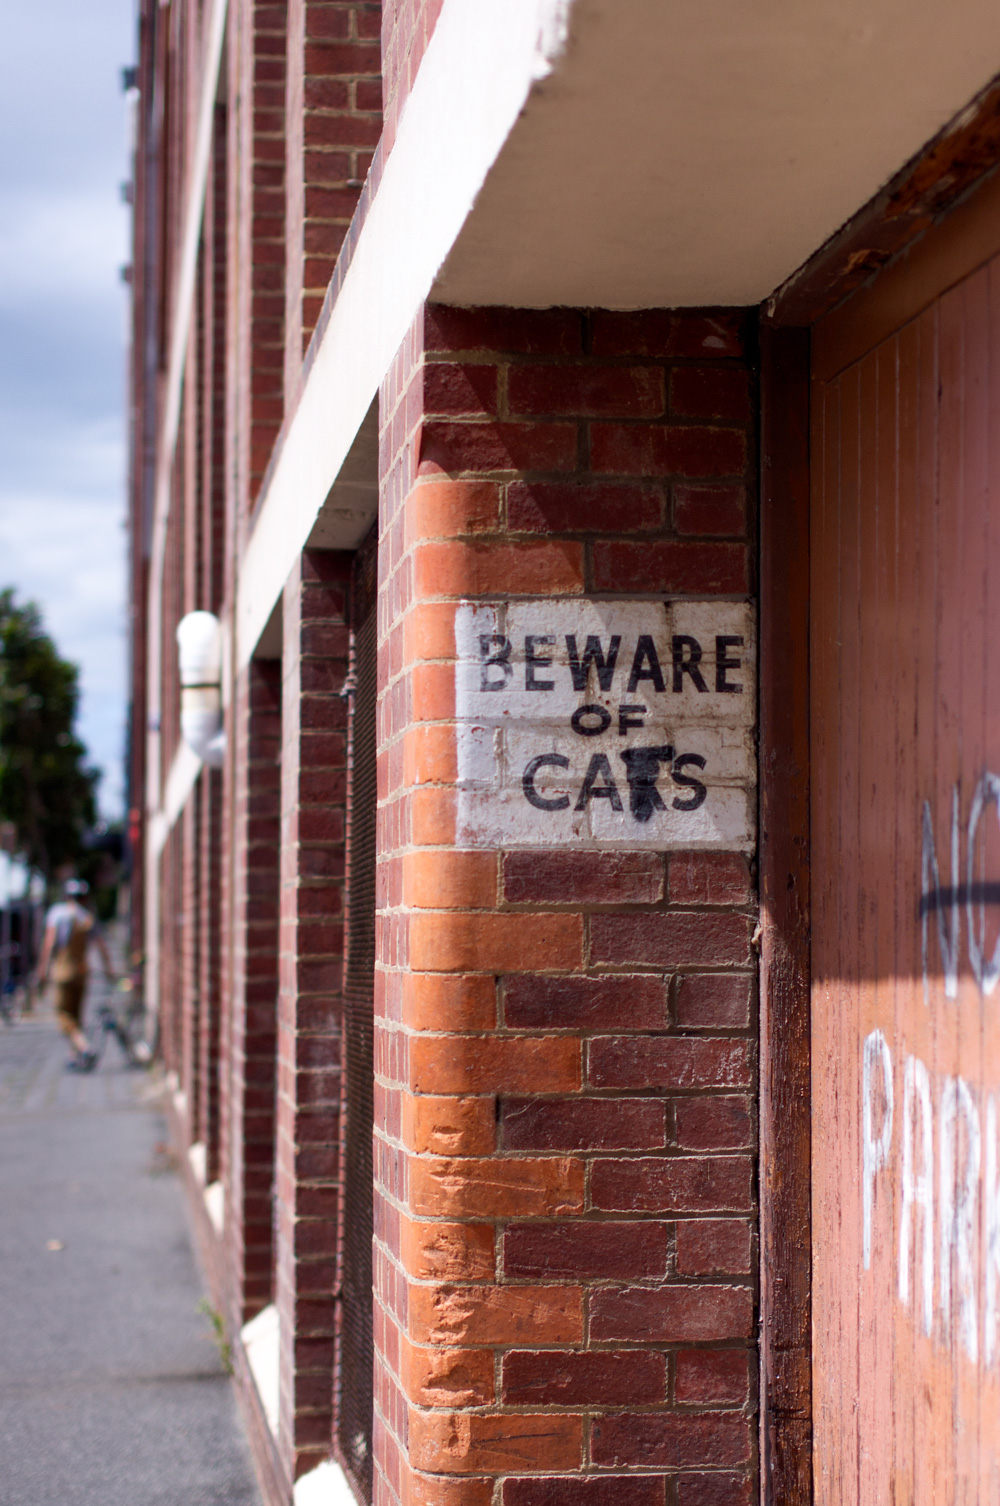 Beware of cats. Photo by Susan Fitzgerald.